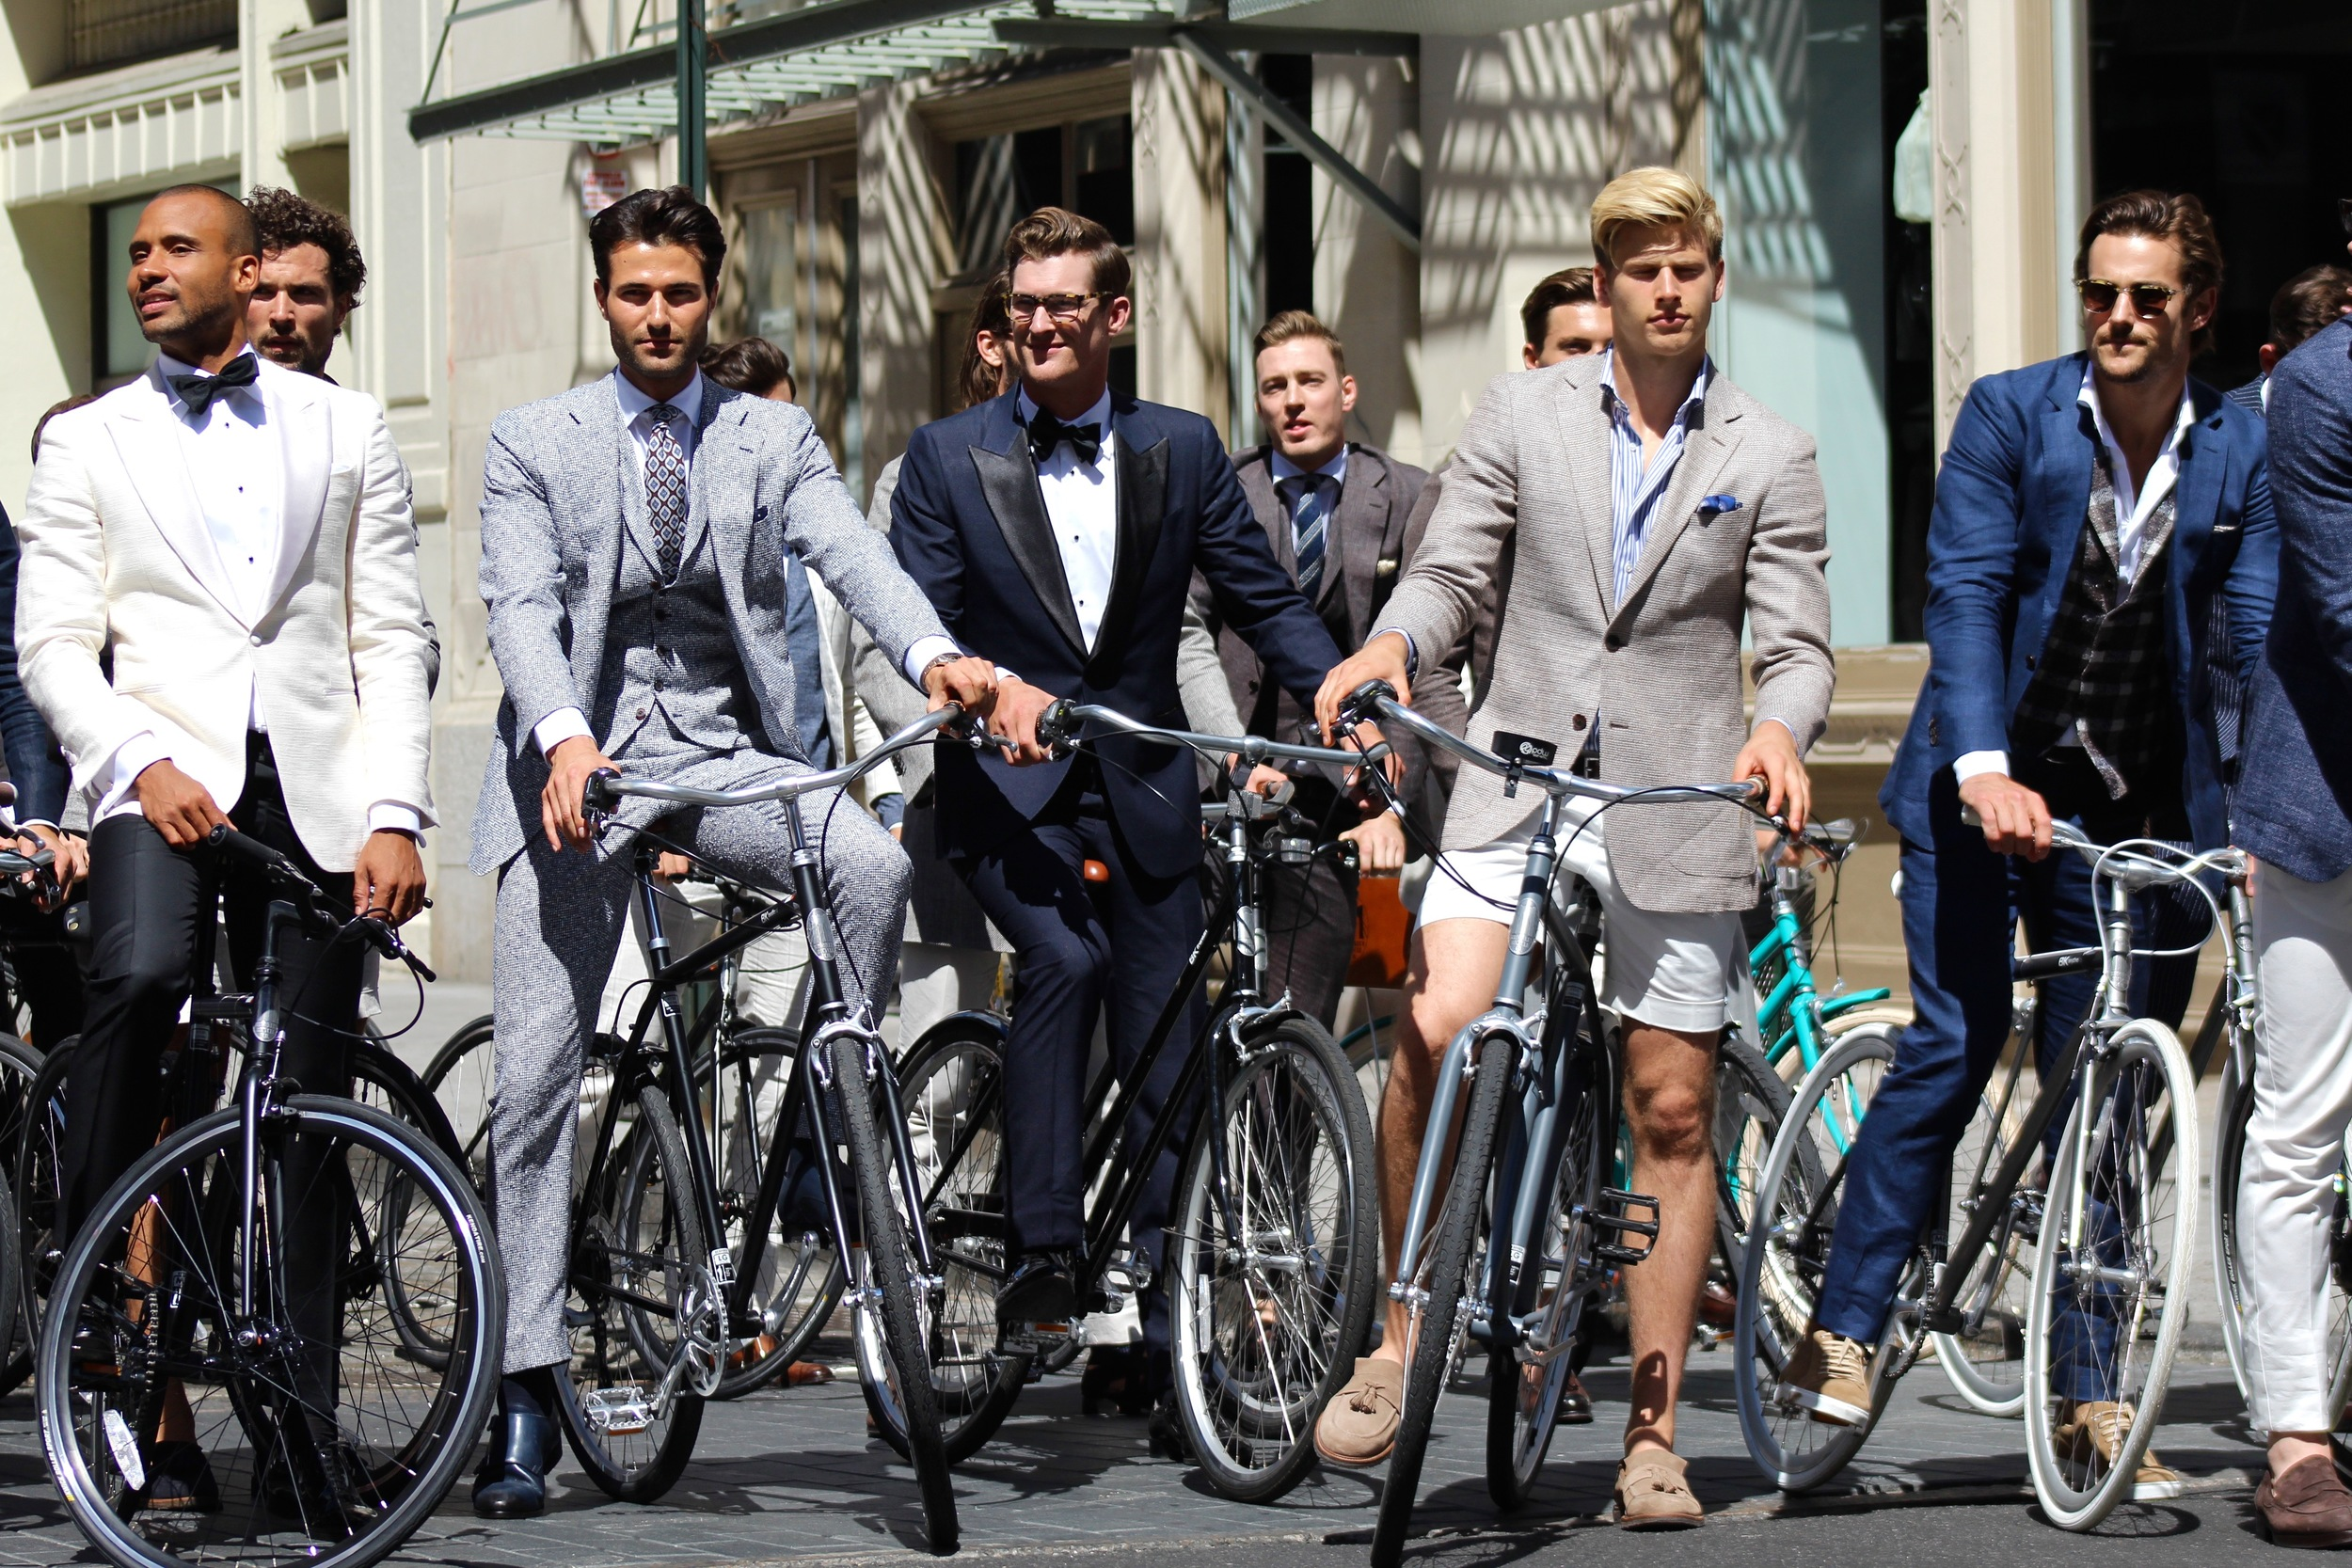 suit supply bikes